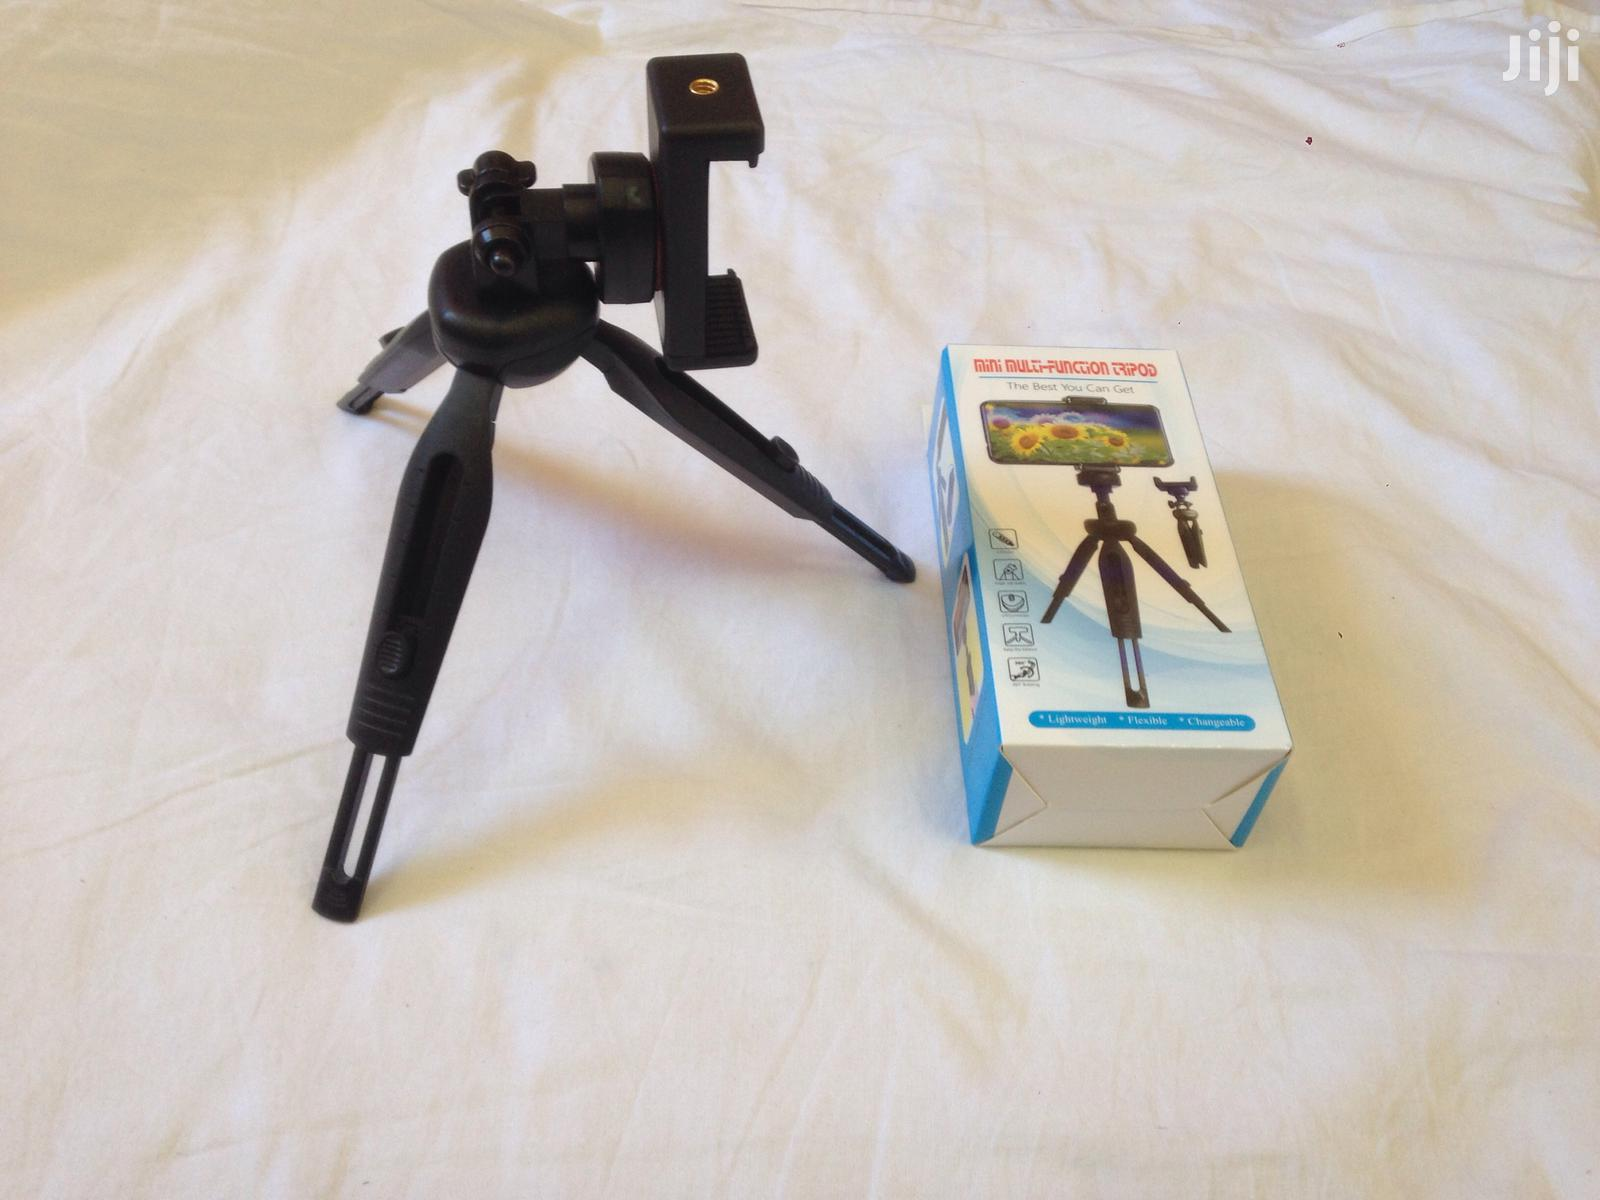 Tripod Stand With Multi Dimensional Head For Phone | Accessories for Mobile Phones & Tablets for sale in Mvita, Mombasa, Kenya